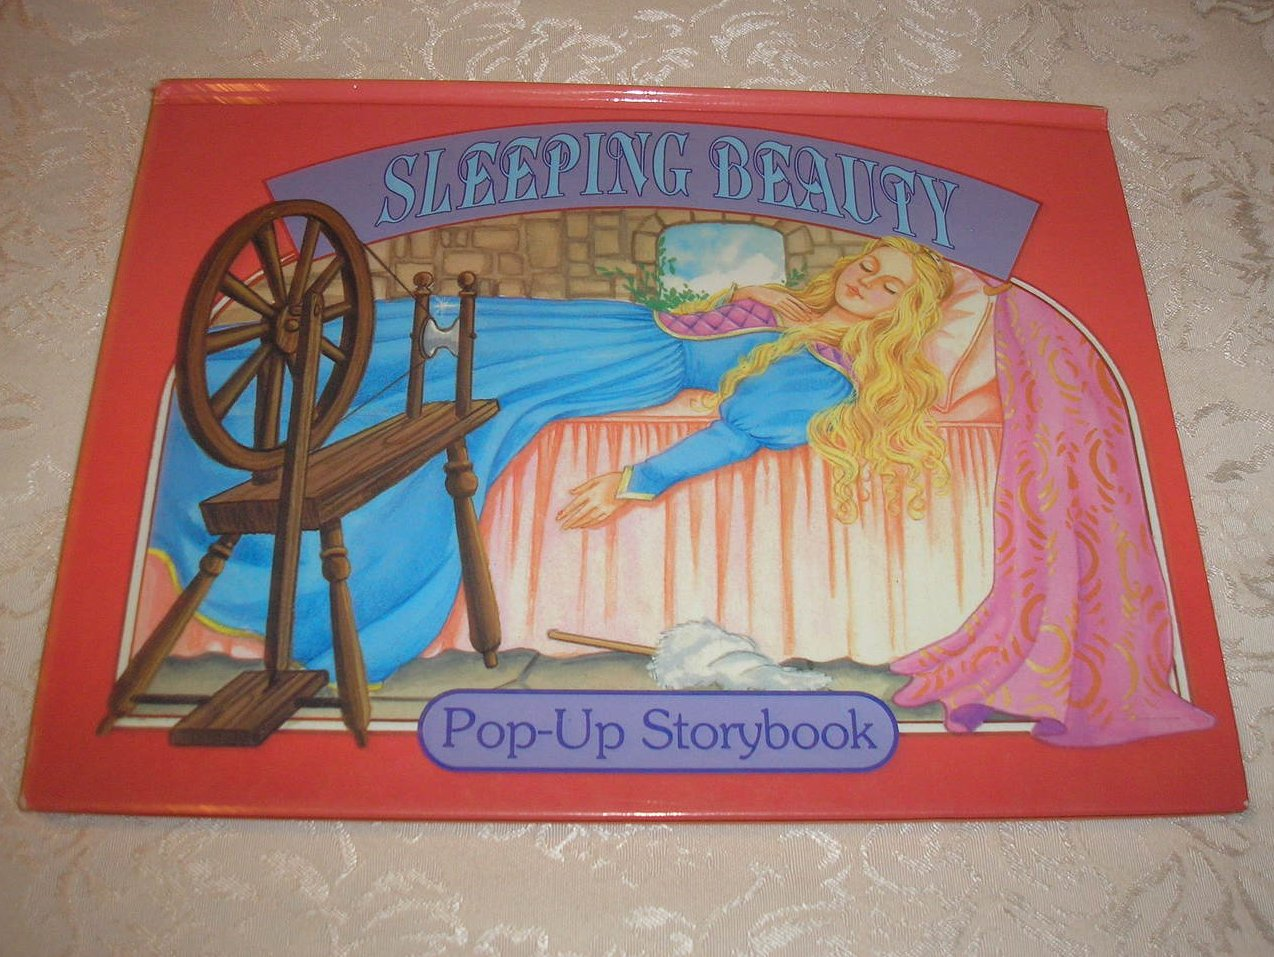 Sleeping Beauty Pop-Up Storybook good rare clean 1999 hc